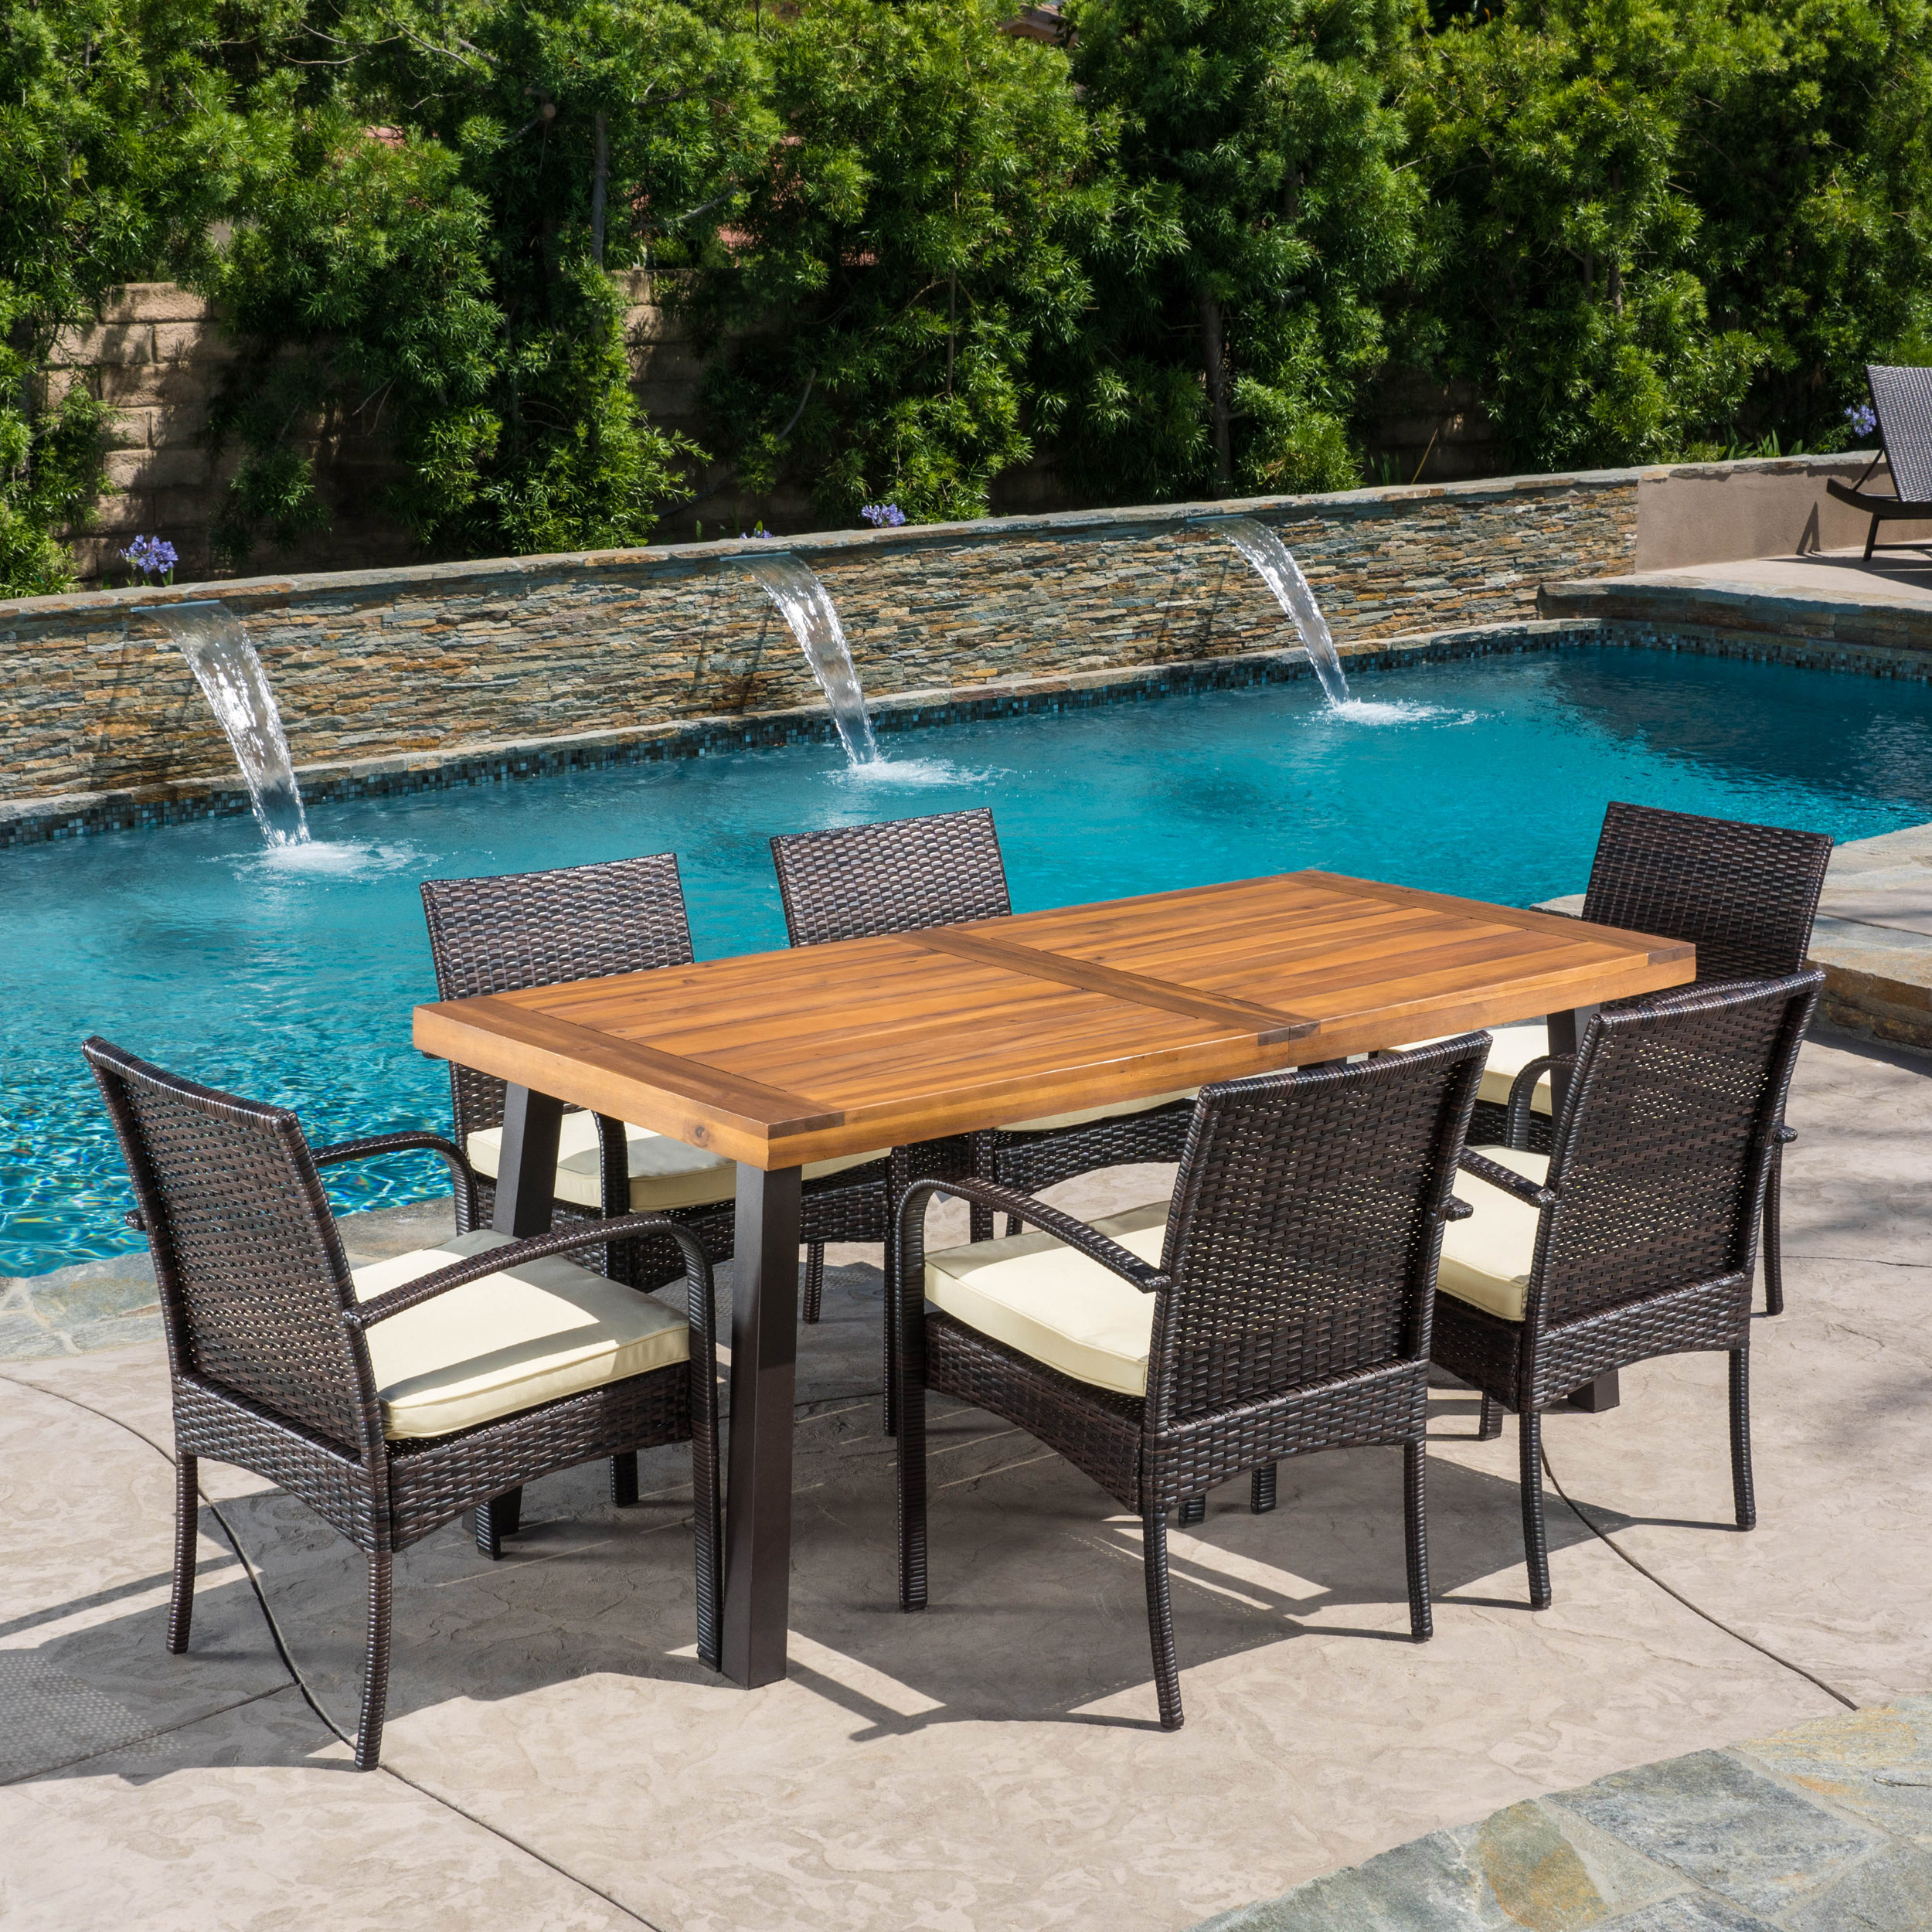 Baratta Outdoor Wicker and Acacia Wood 7-Piece Dining Set, Teak Finish and Crme